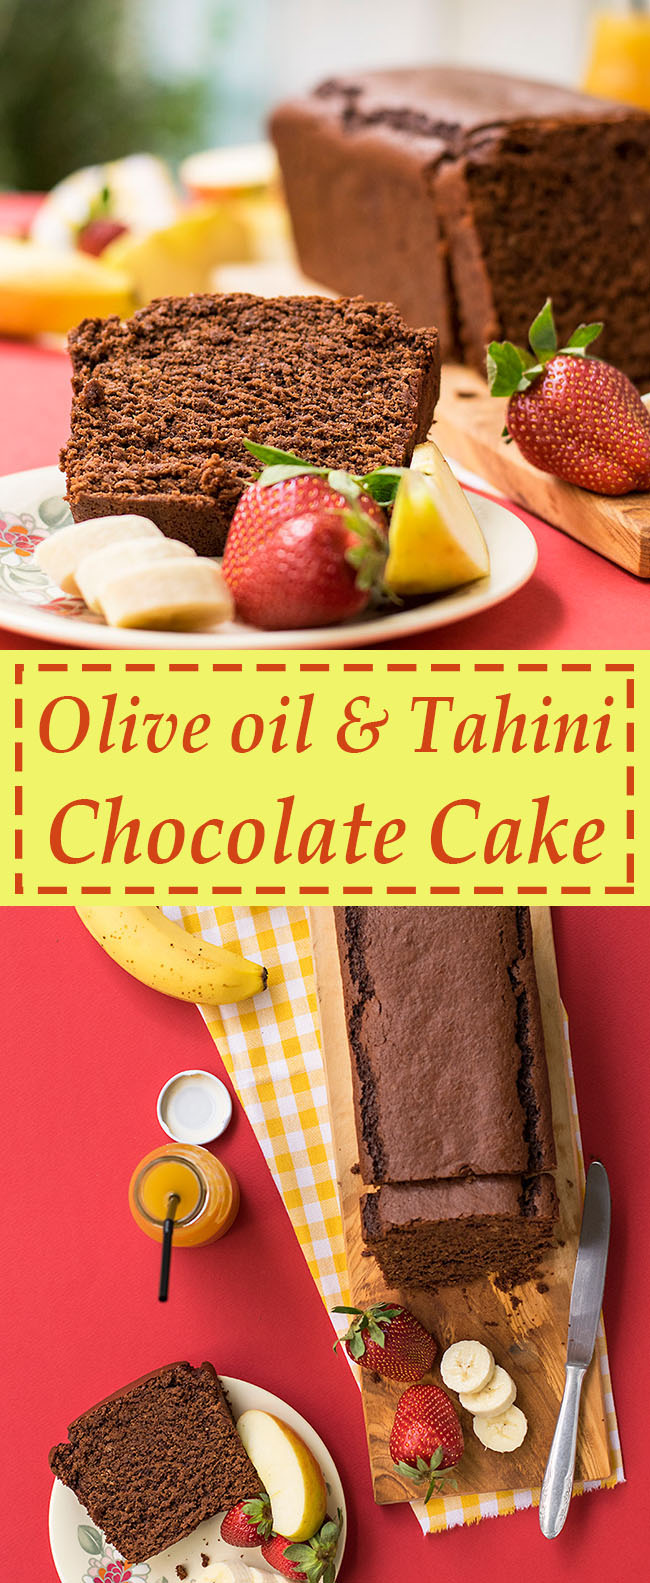 Olive oil & tahini Chocolate Cake 5